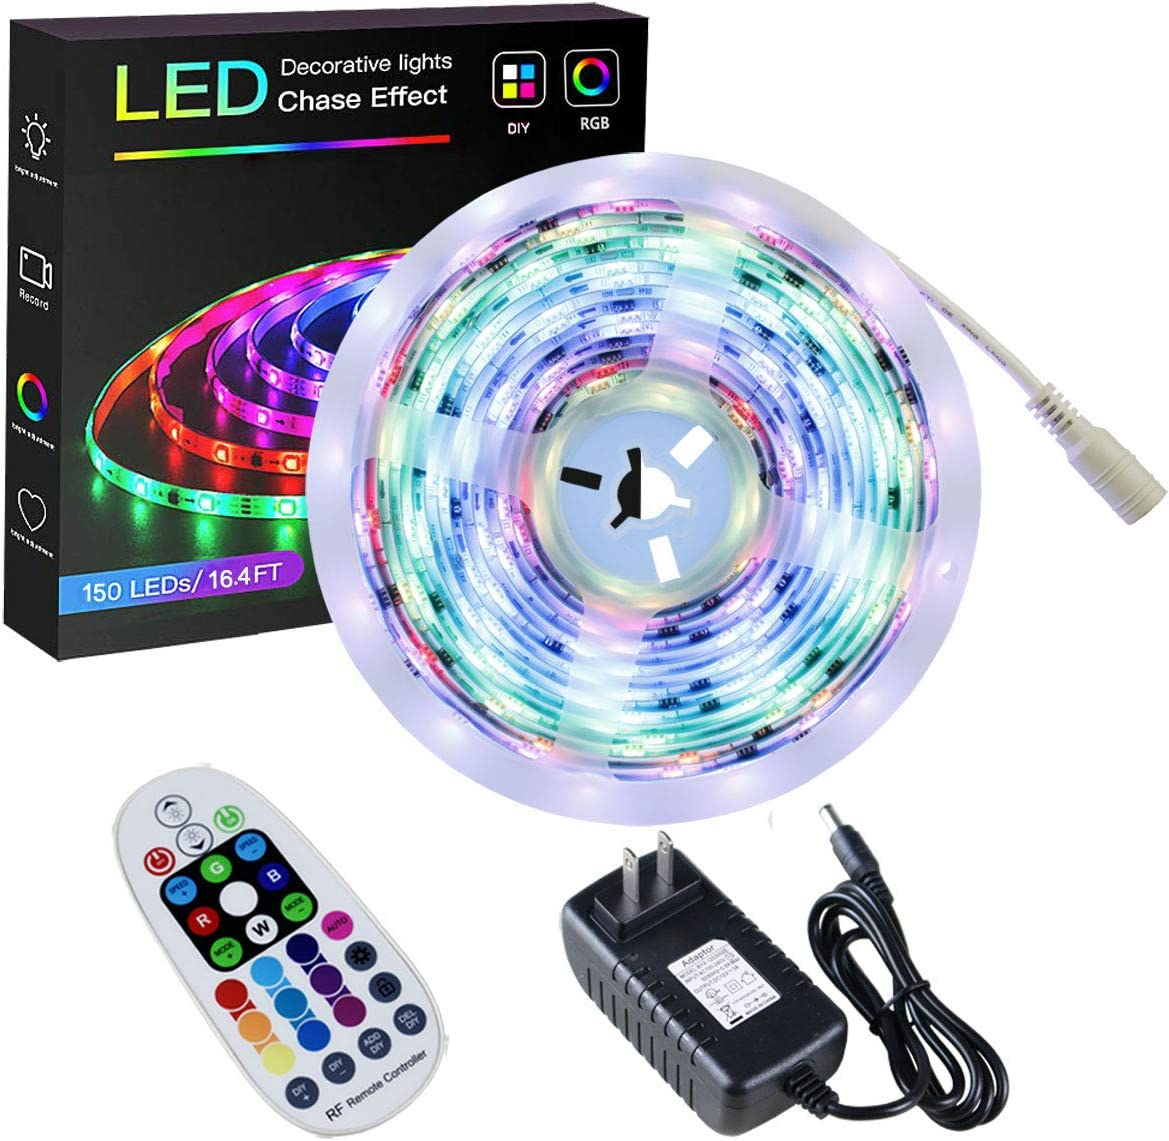 SPARKE RGBIC Led Strip Lights, 16.4ft/5m LED Tape Light, 150 Pixels RGB 5050 Waterproof Strip with RF Remote and Power Supply, Chasing Effect for Home Interior Parties